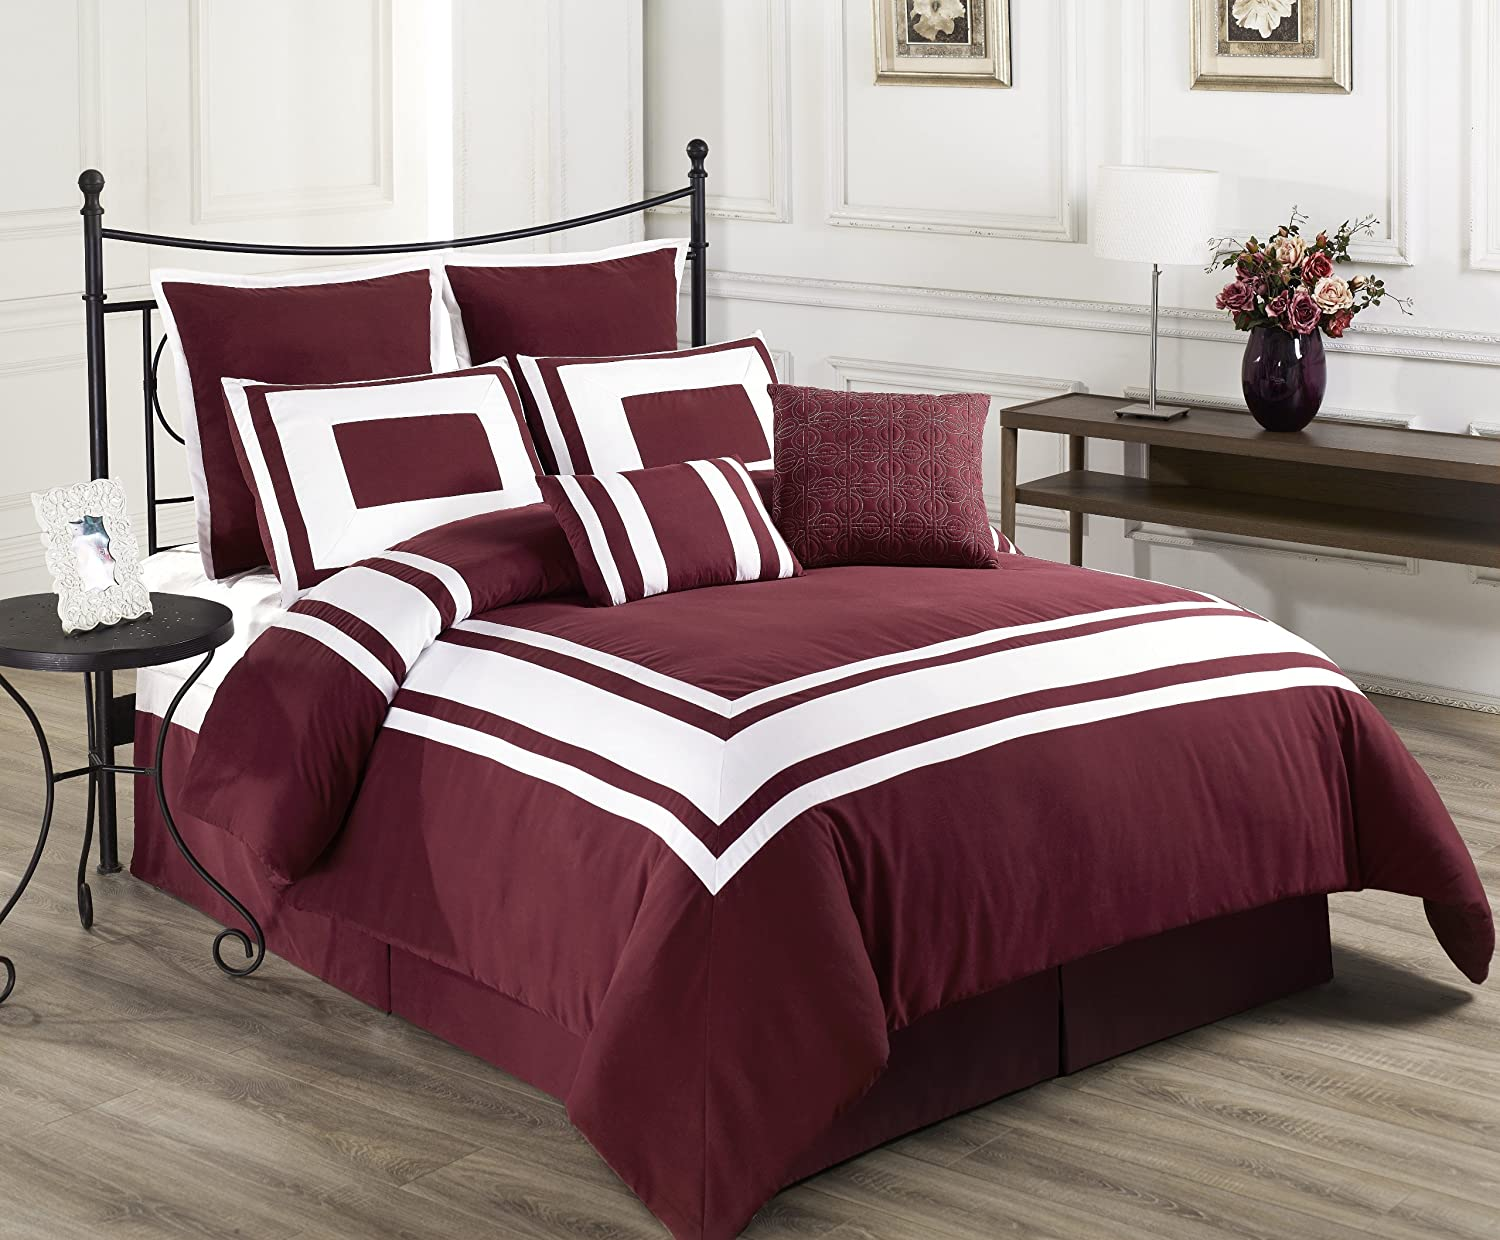 your sets set comforter bedding king idea exciting for in modern regarding tips house allmodern white